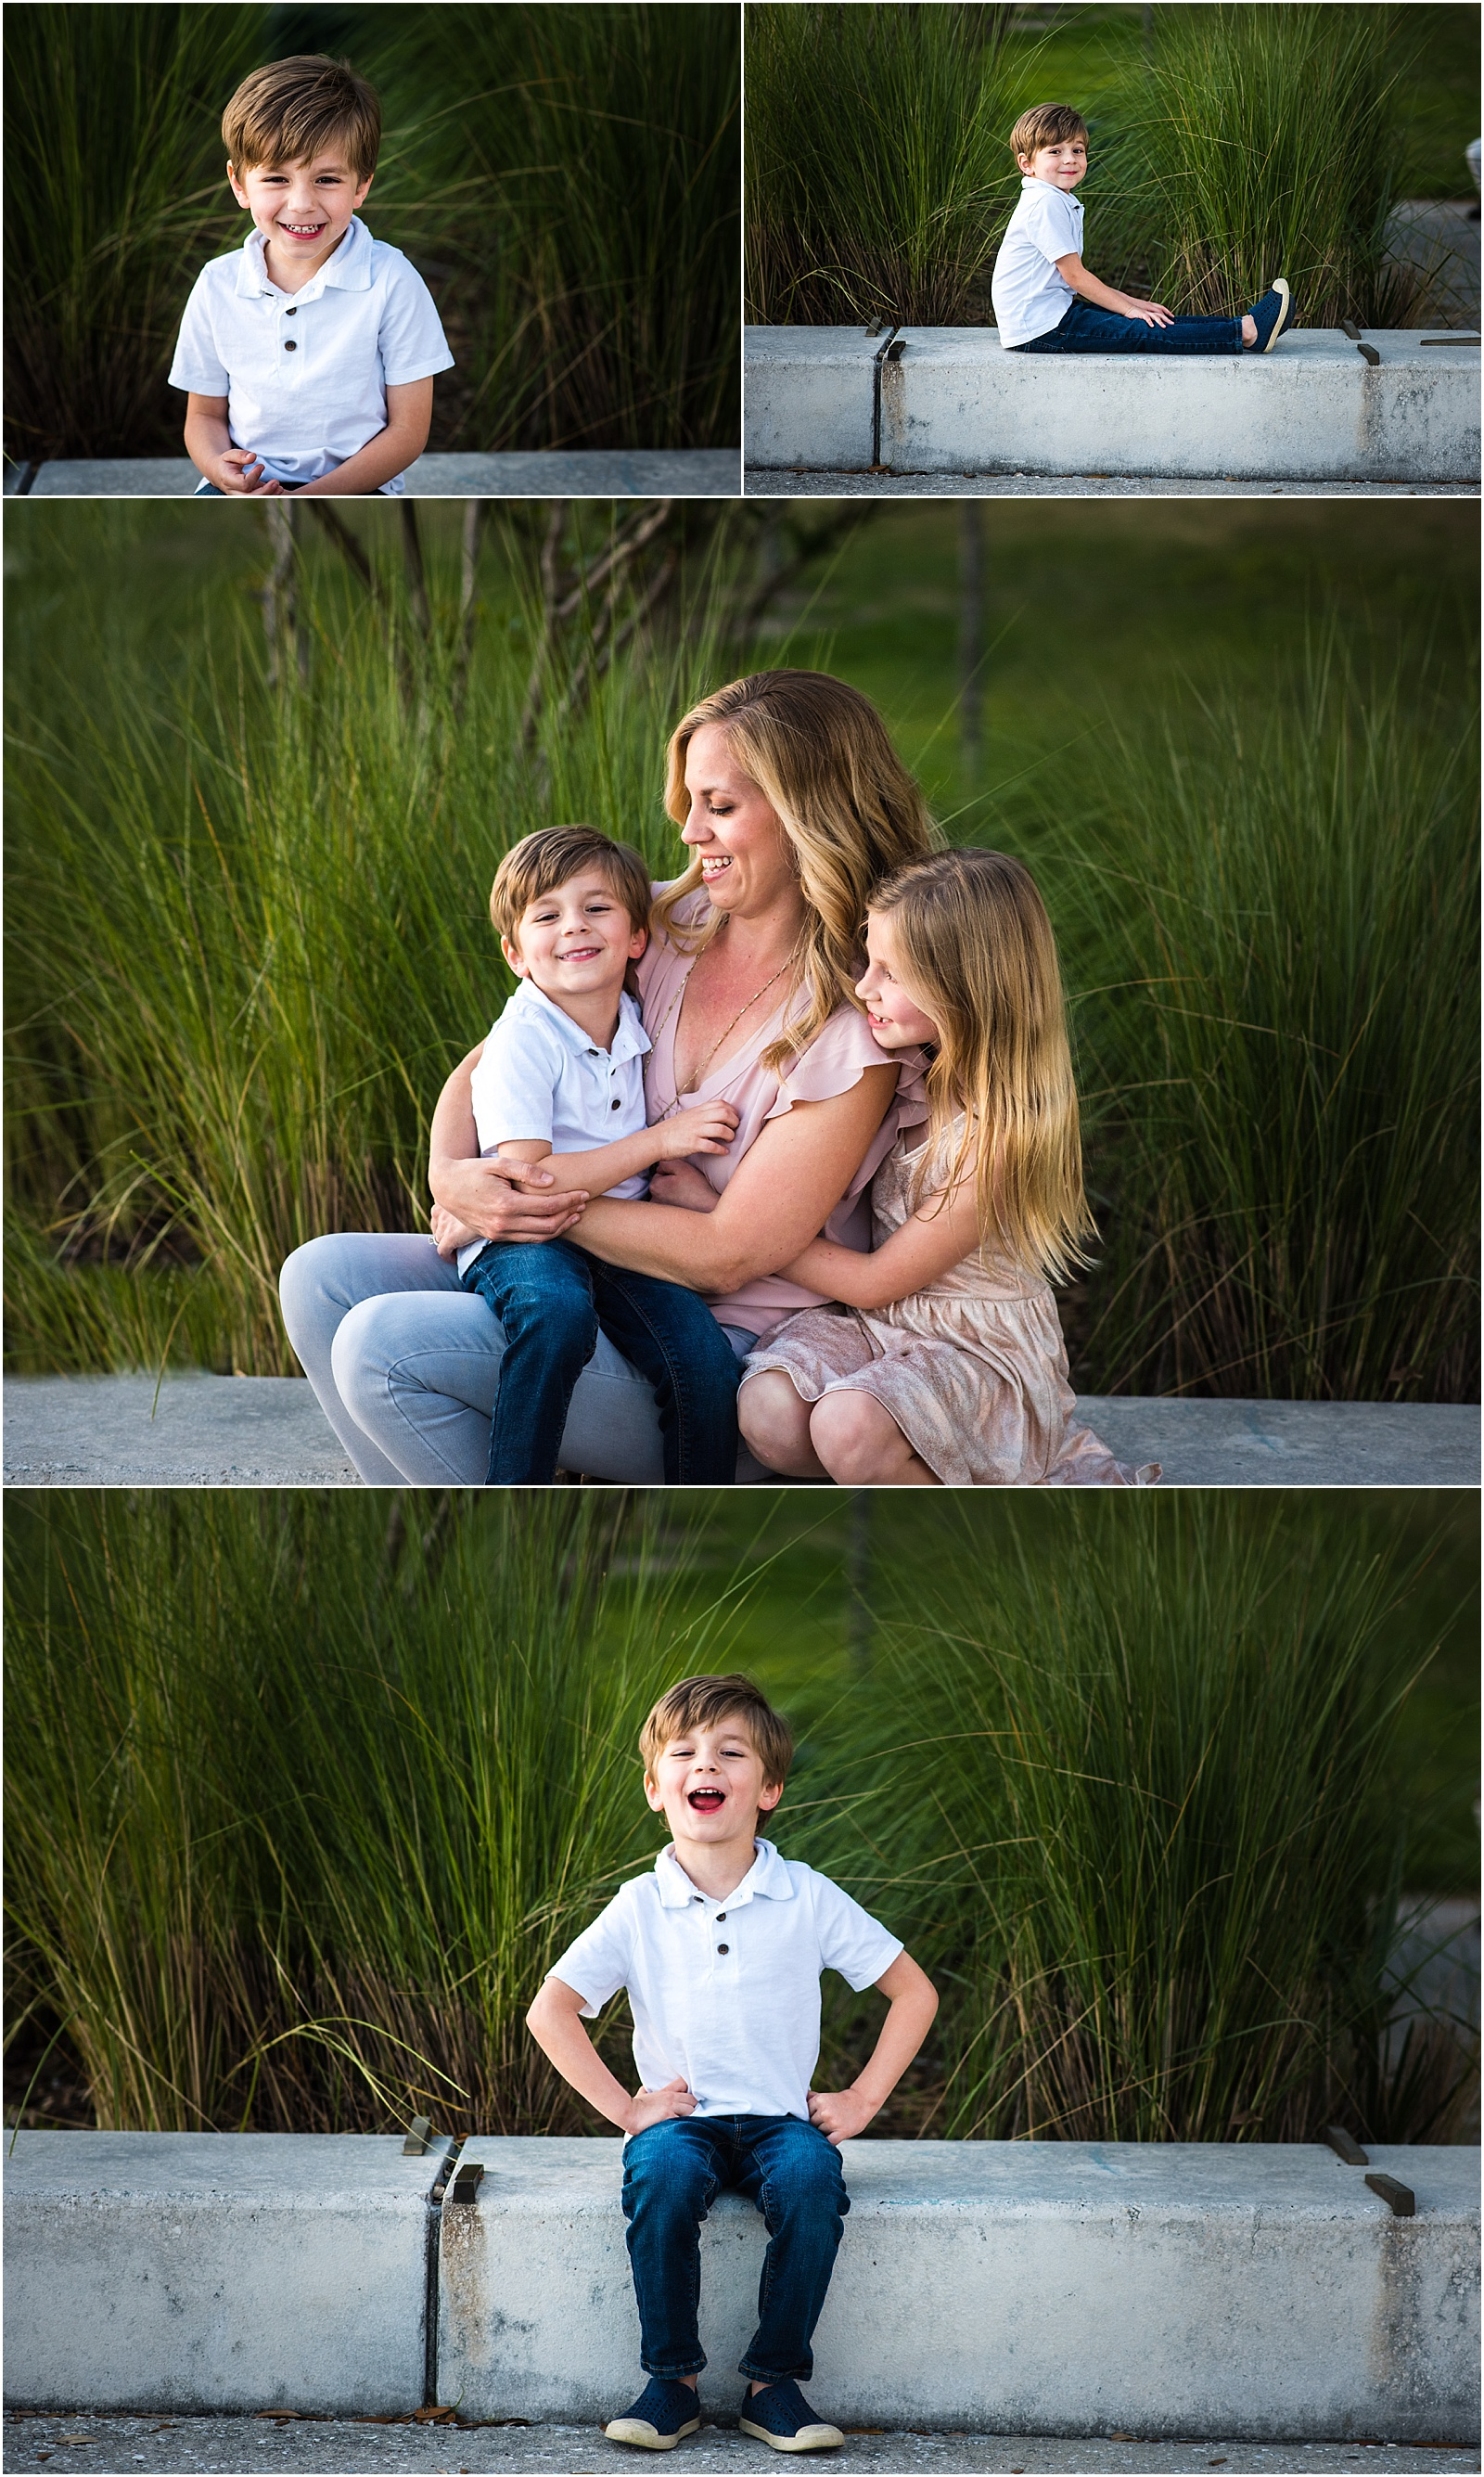 Tampa Family Downtown greenery Photoshoot.jpg